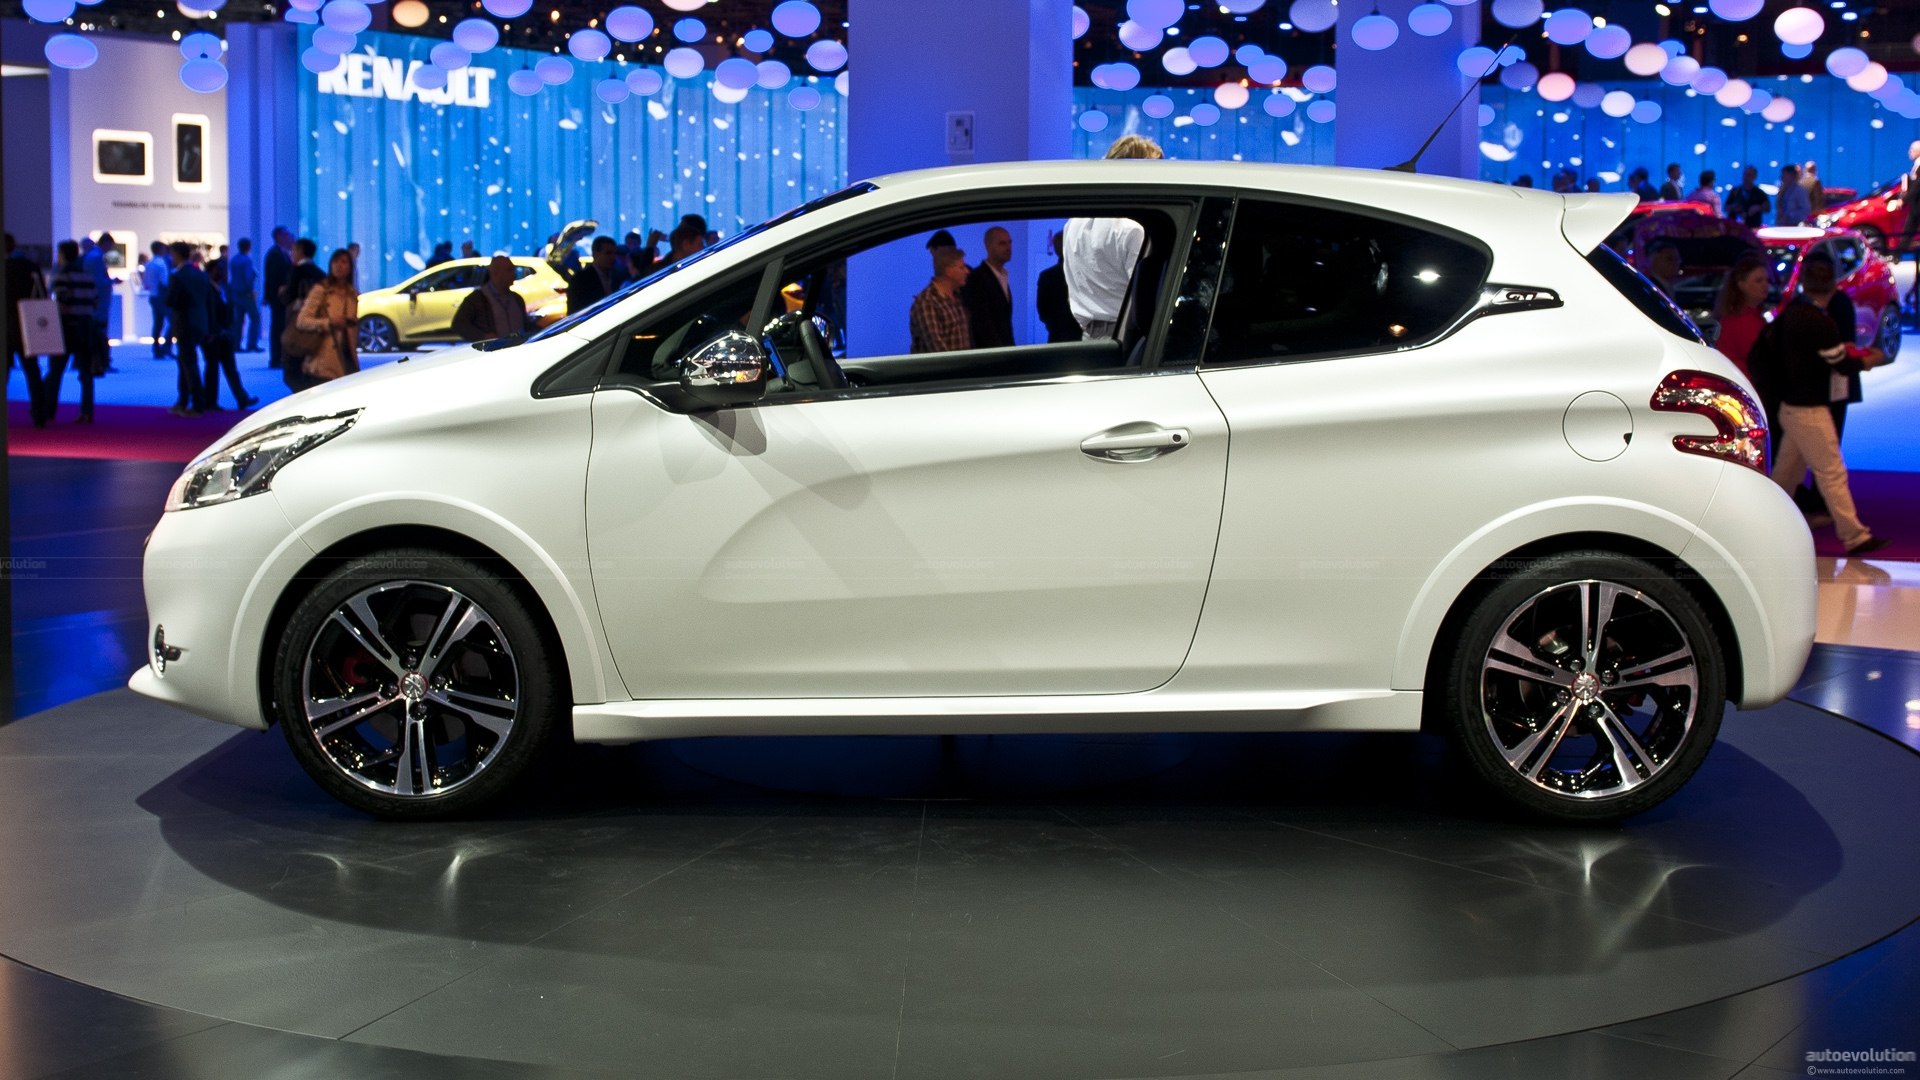 paris-2012-peugeot-208-gti-live-photos_1.jpg